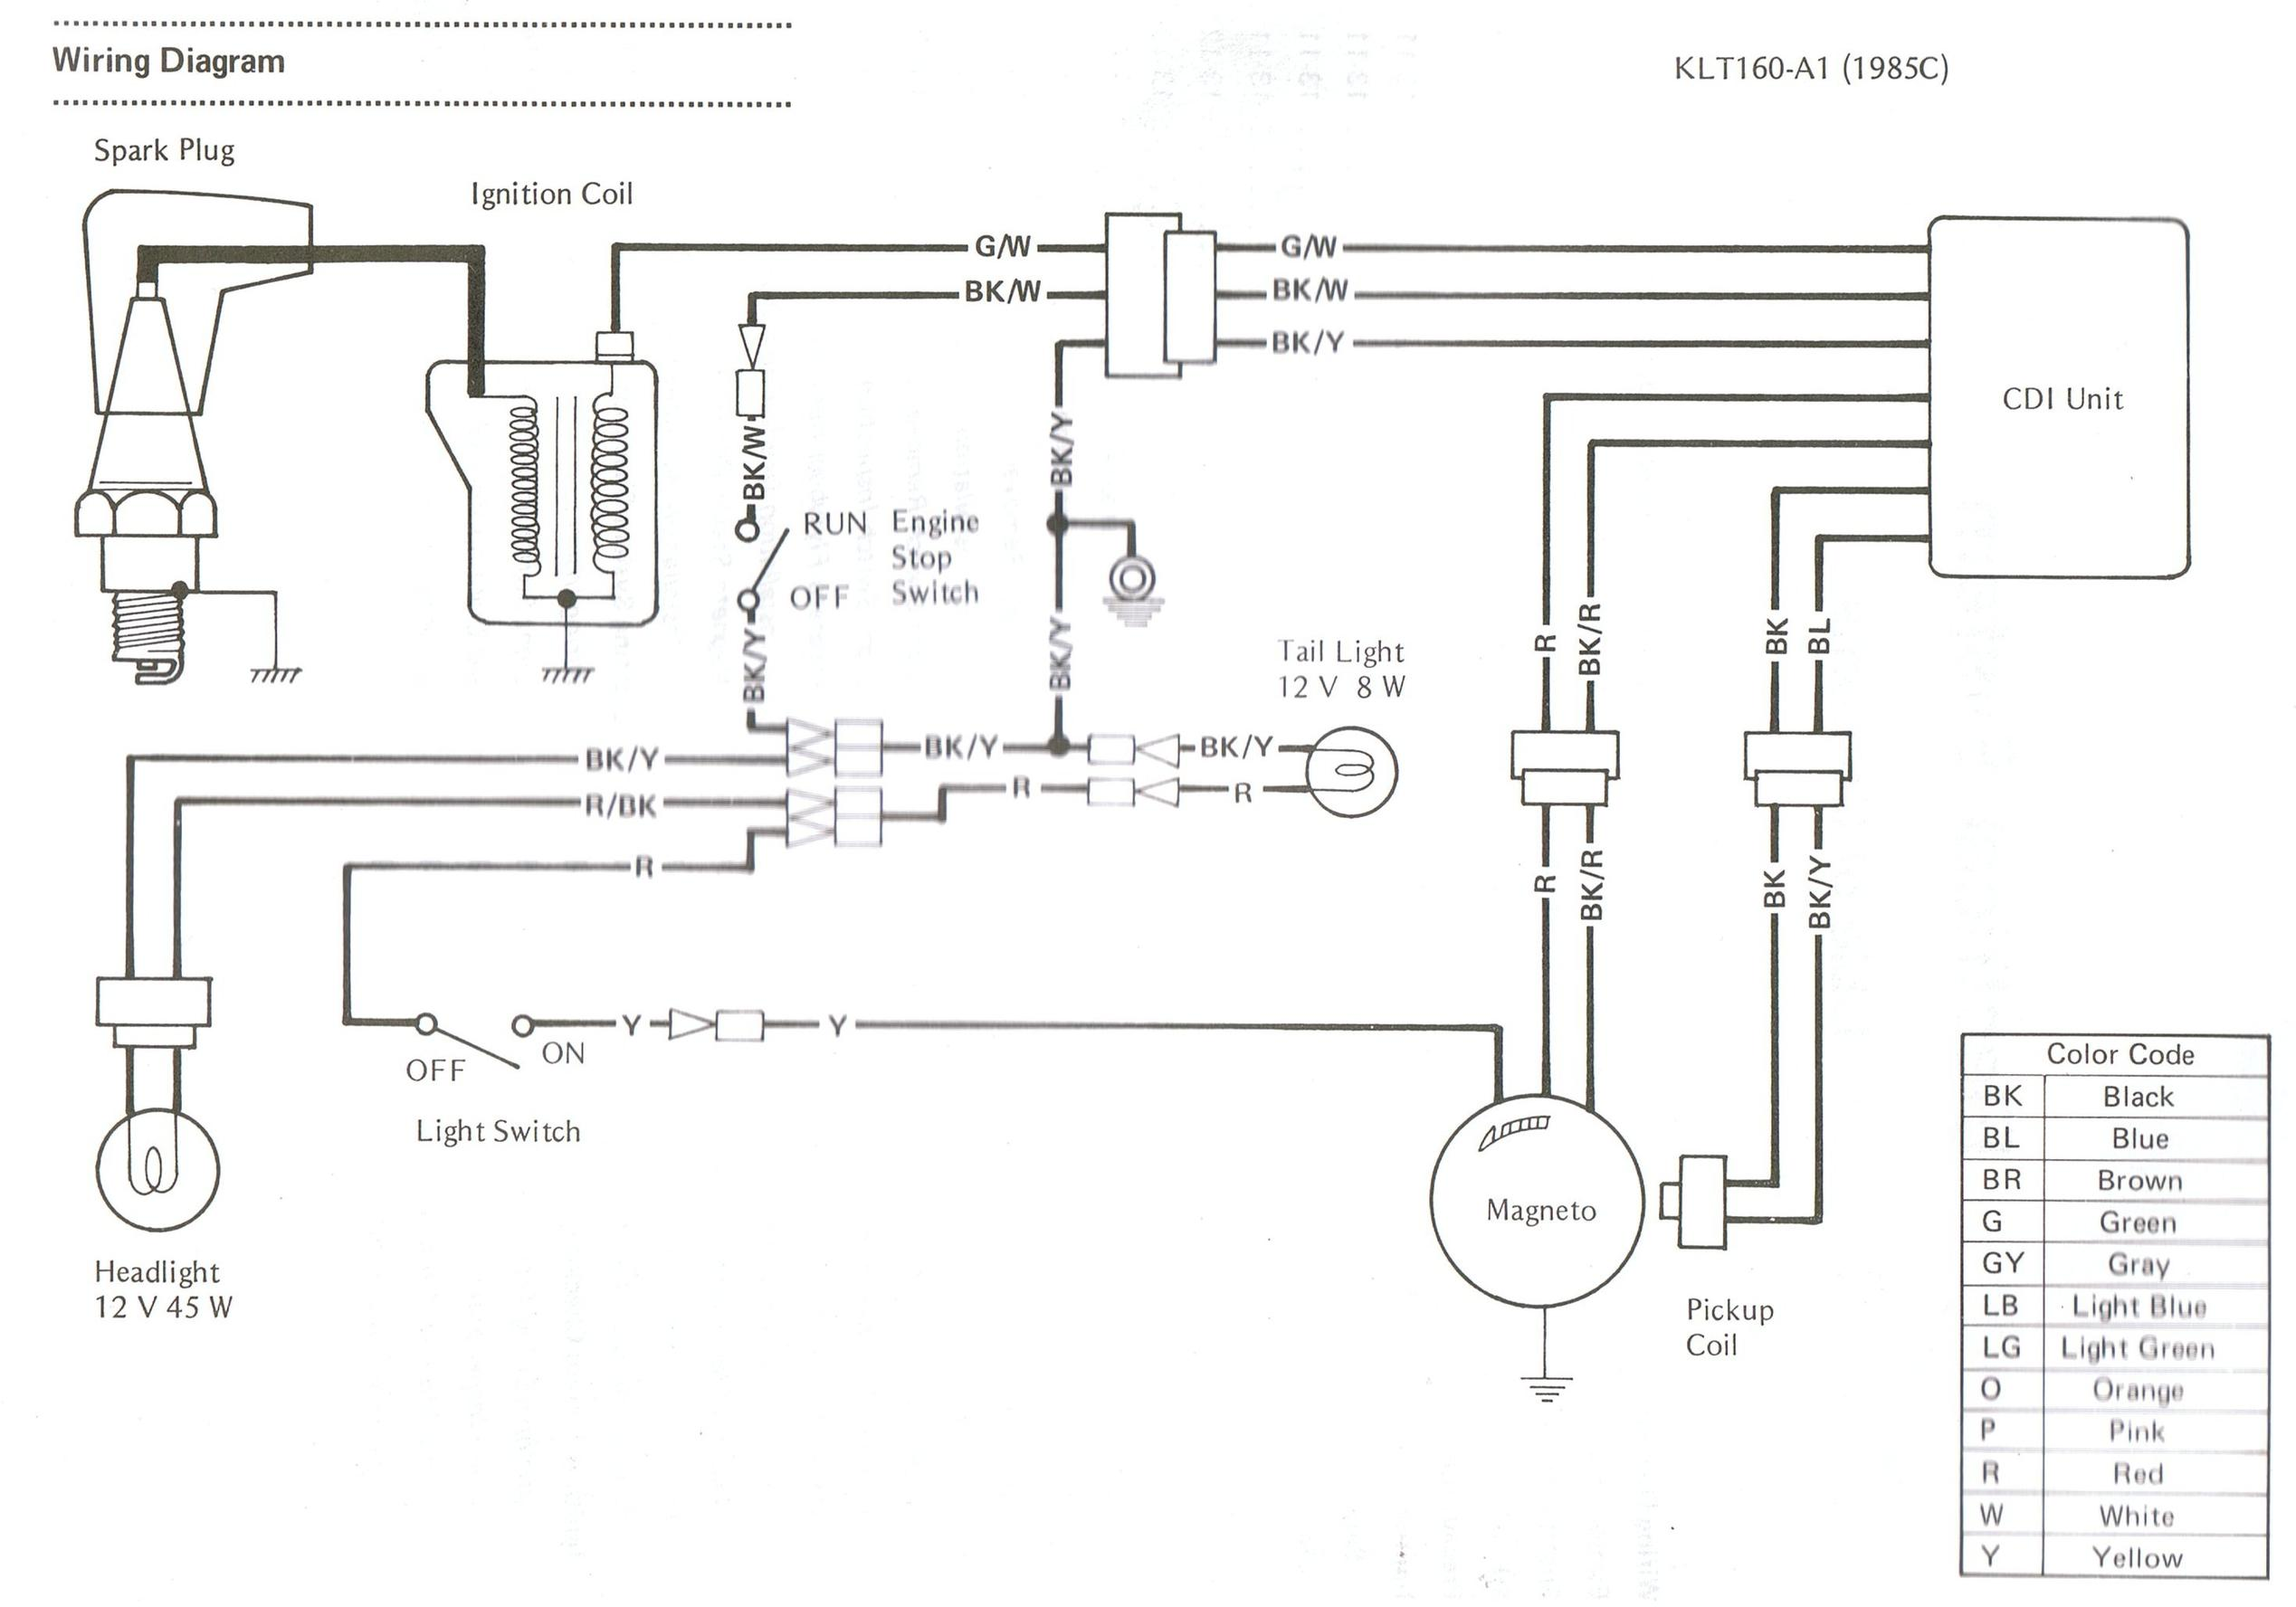 Attachment on Schematic Wiring Diagram For Honda 450 Atv